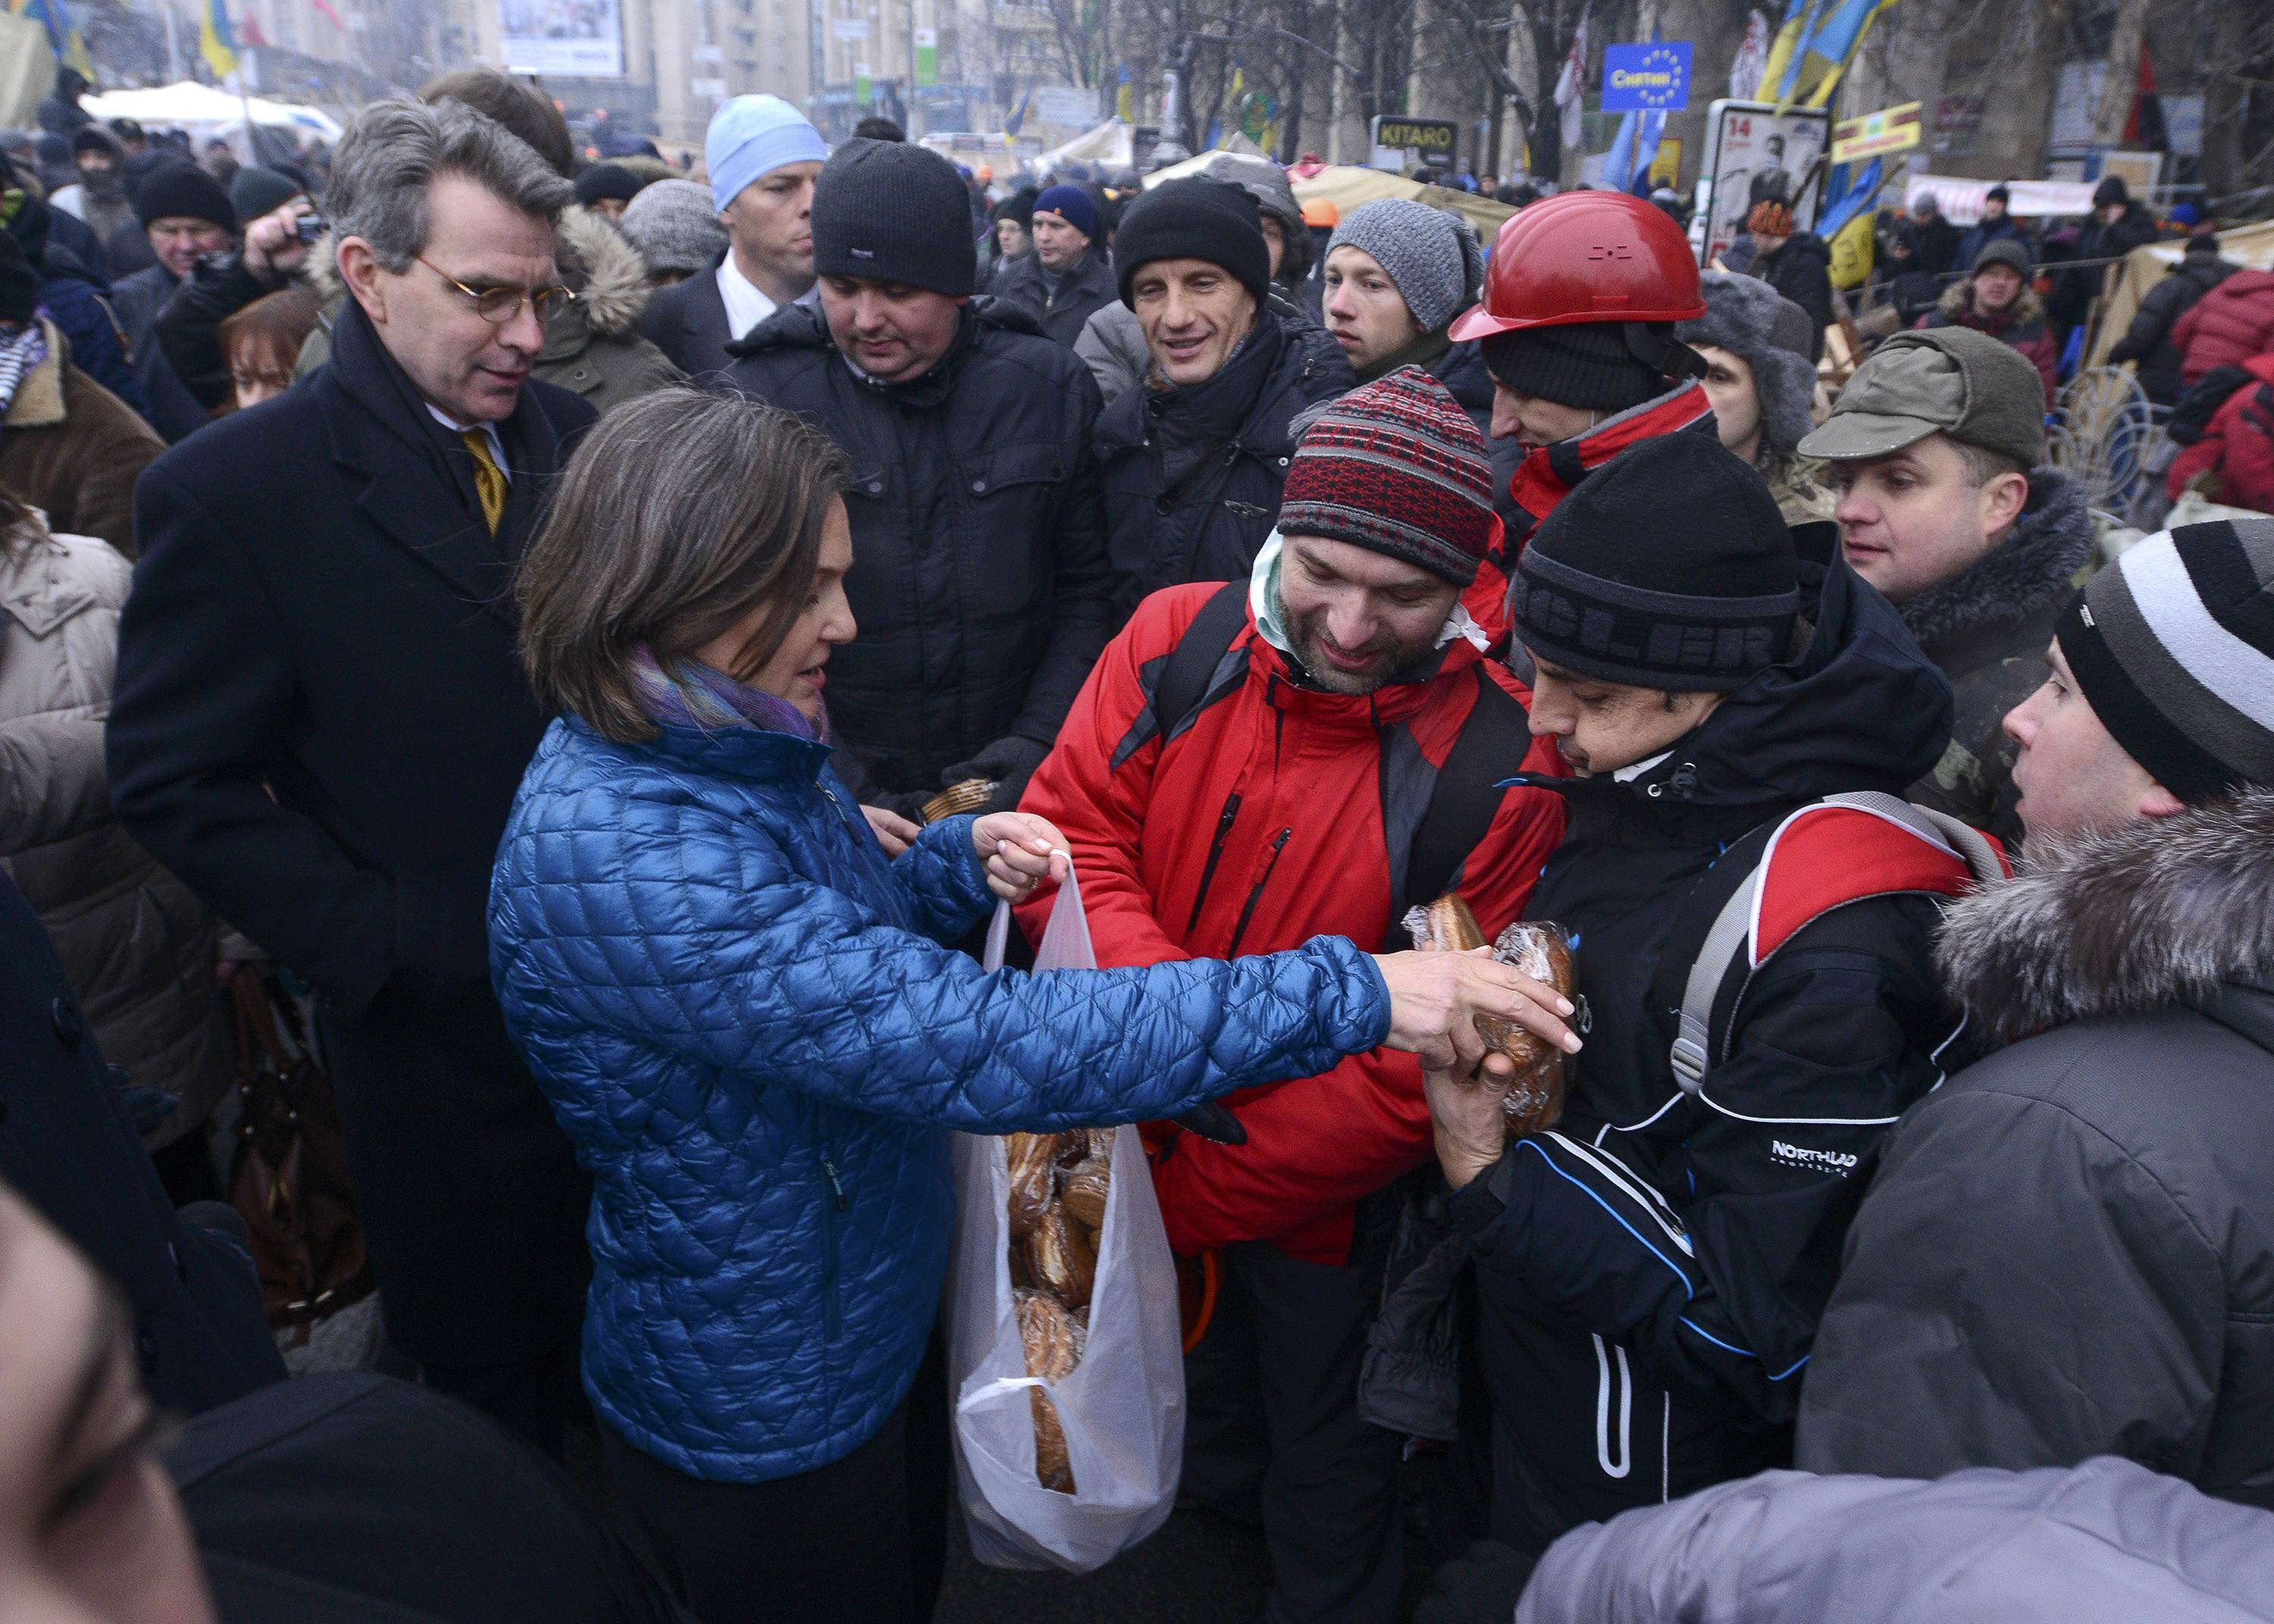 U.S. Assistant Secretary of State Victoria Nuland says Washington has spent $5 billion trying to subvert Ukraine